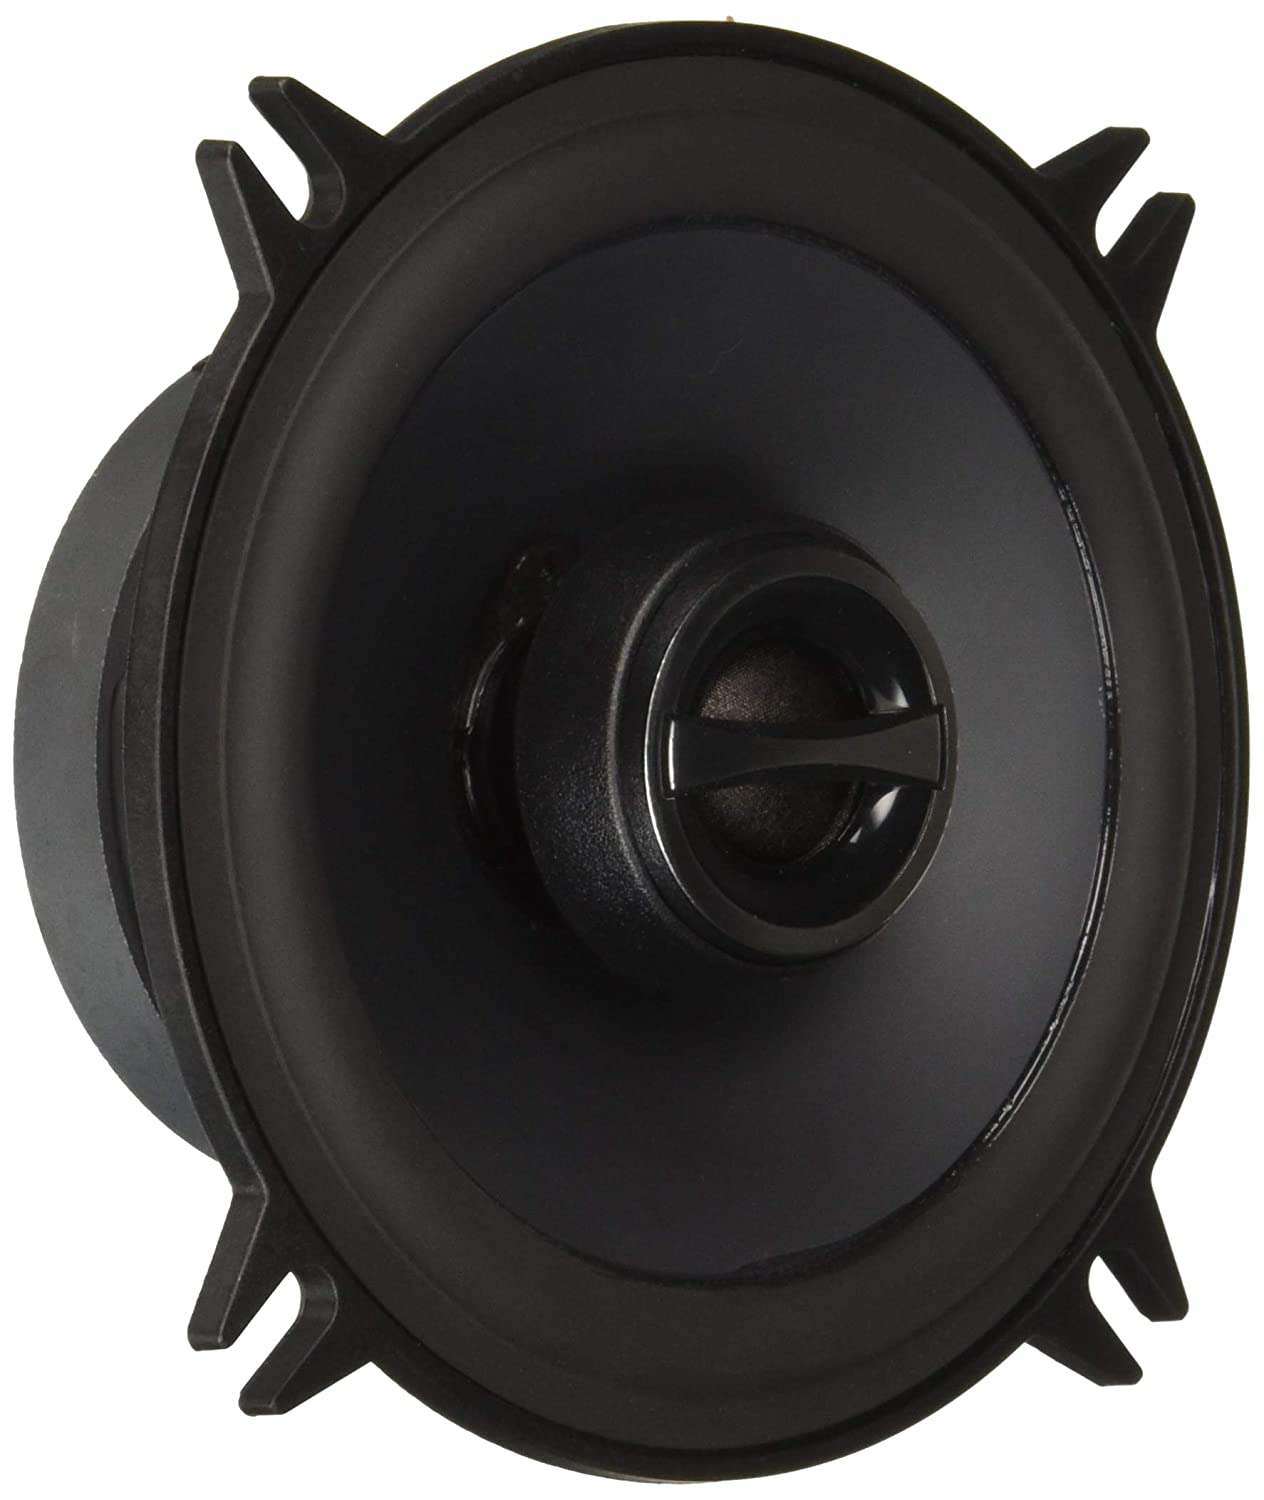 Best Speakers For Harley Street Glide Reviews: Top-5 in